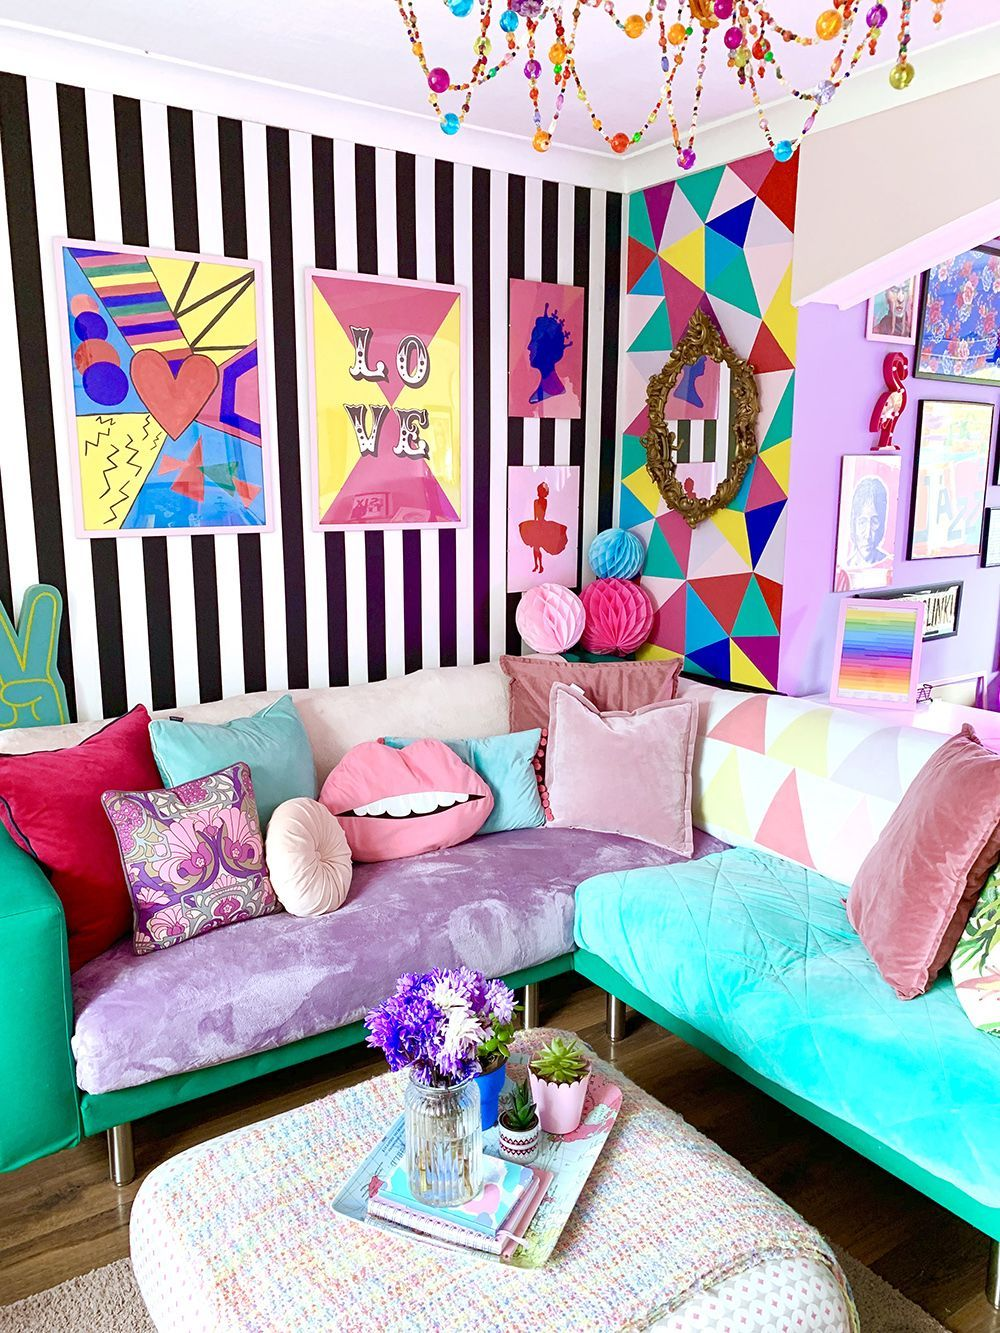 House Tour: A Crazy and Colourful Pop Art Inspired Rental ...